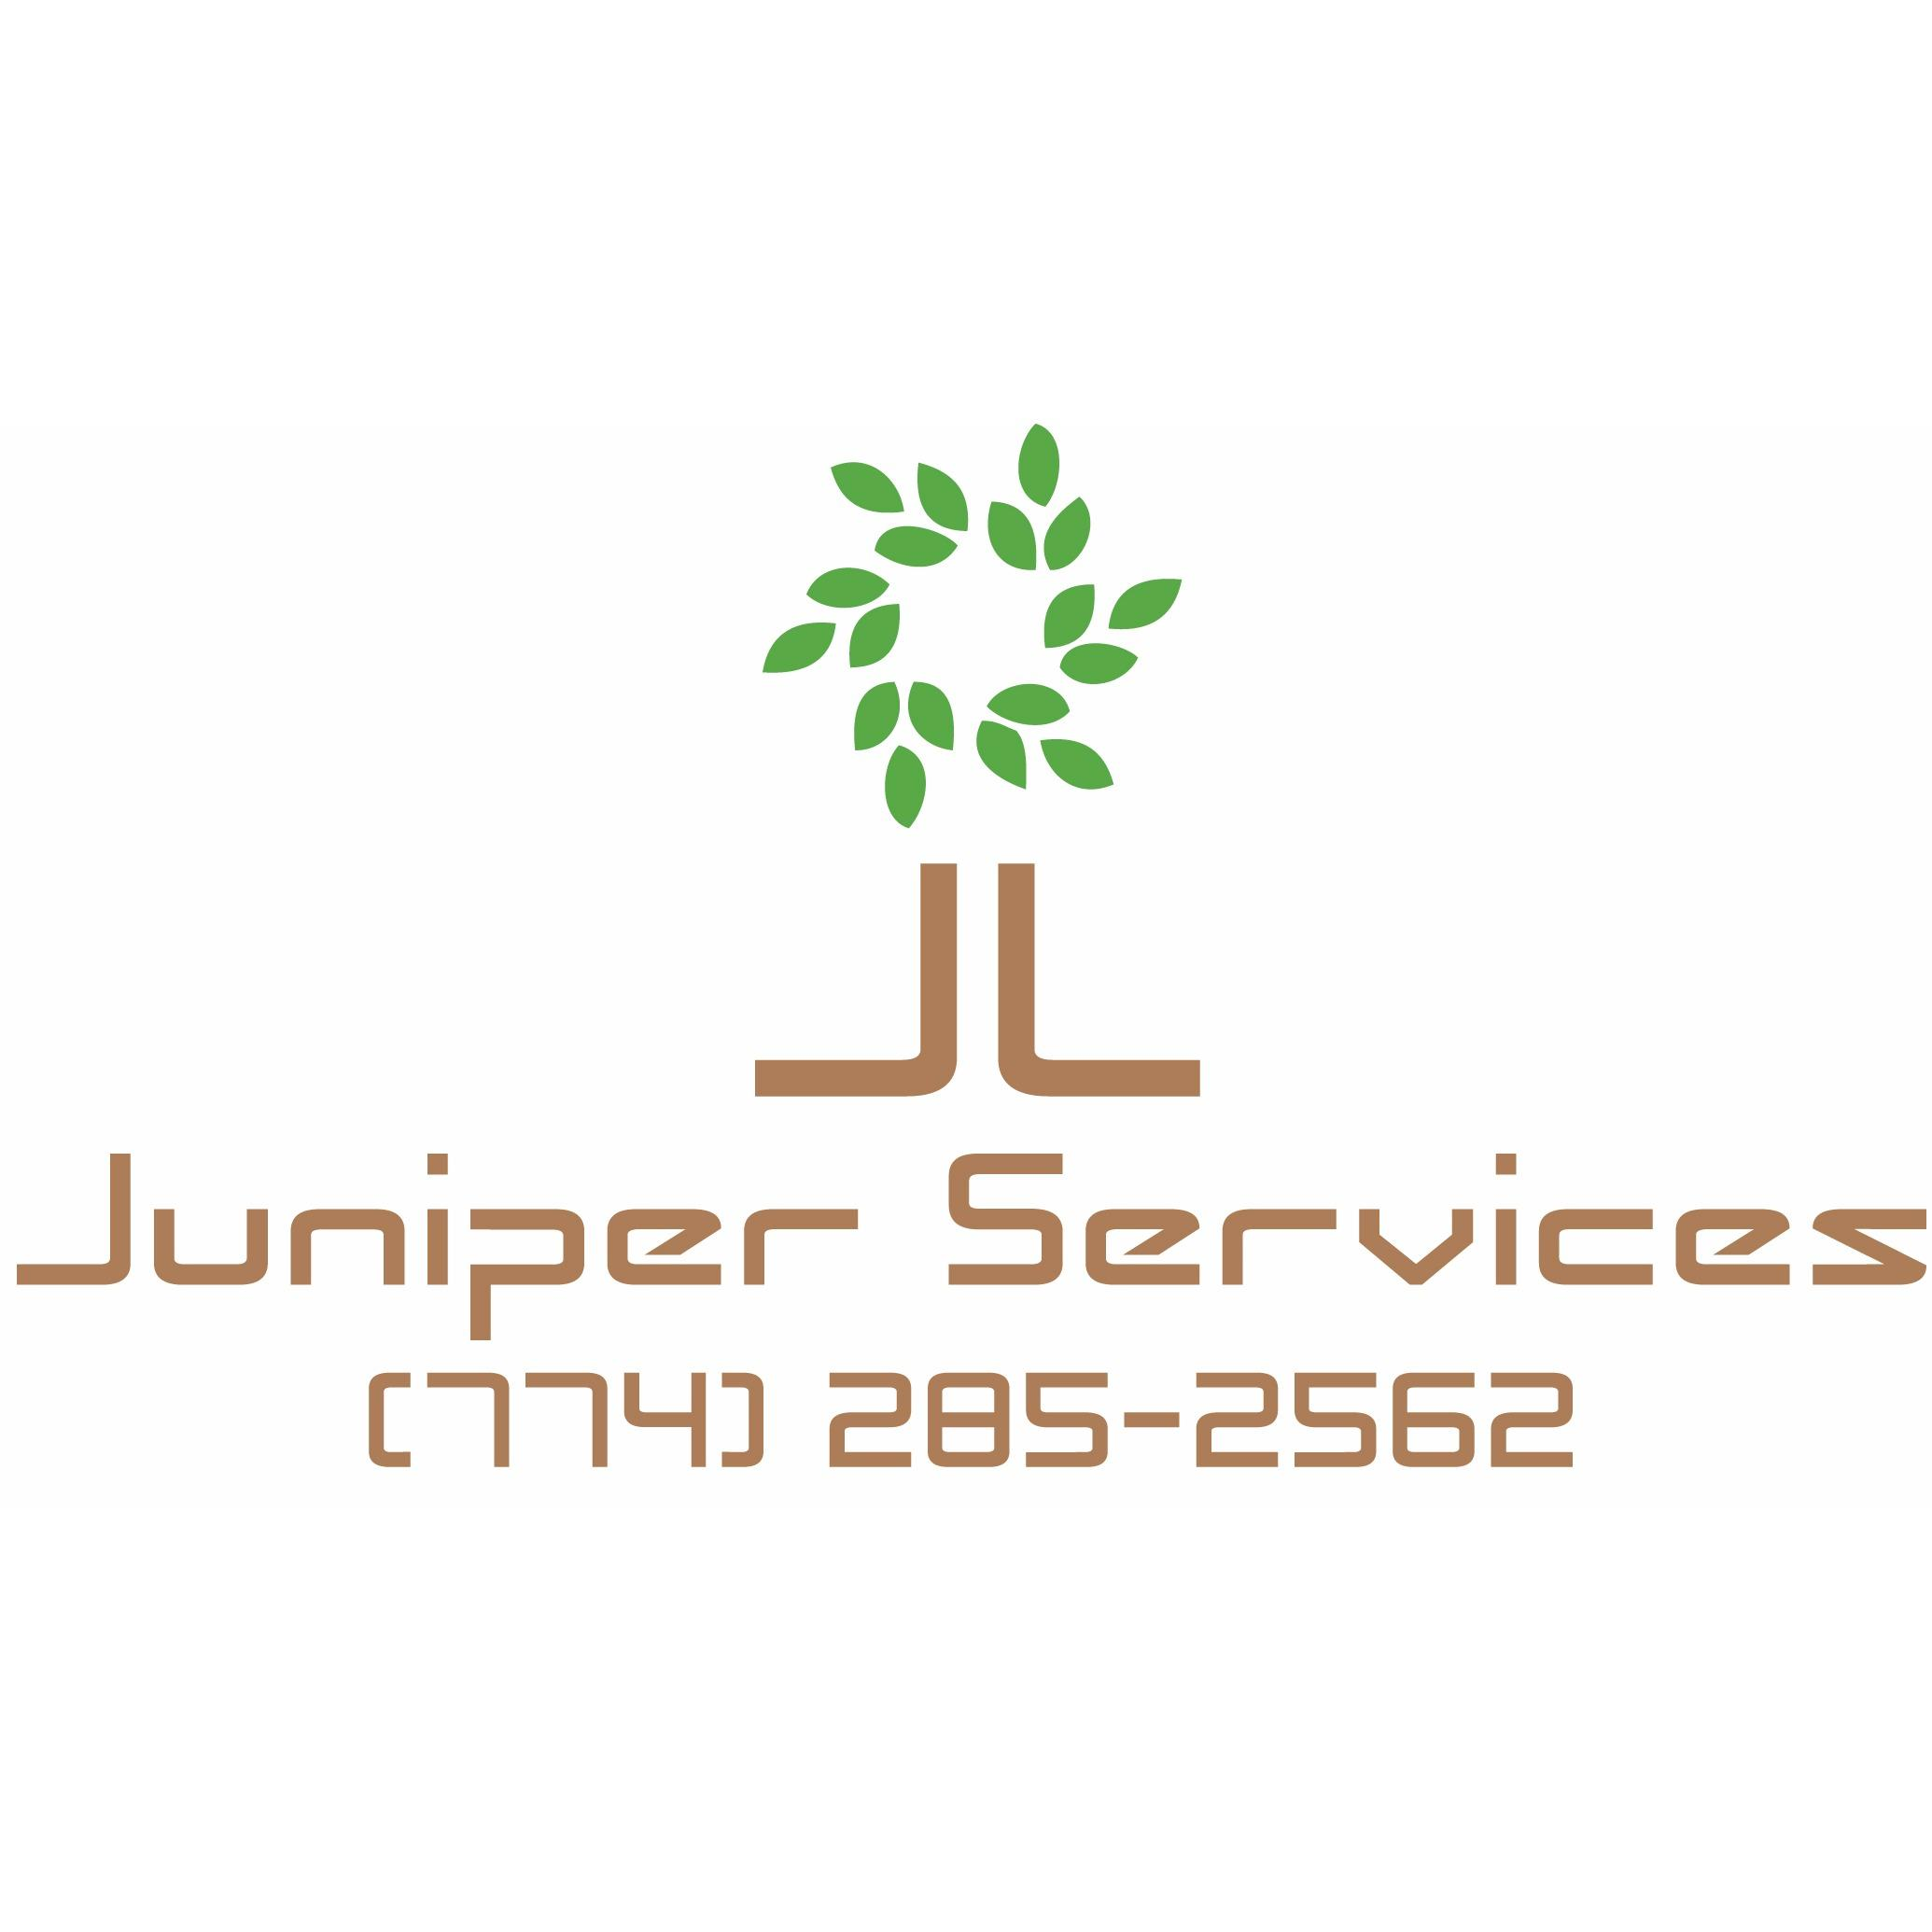 Juniper Services LLC